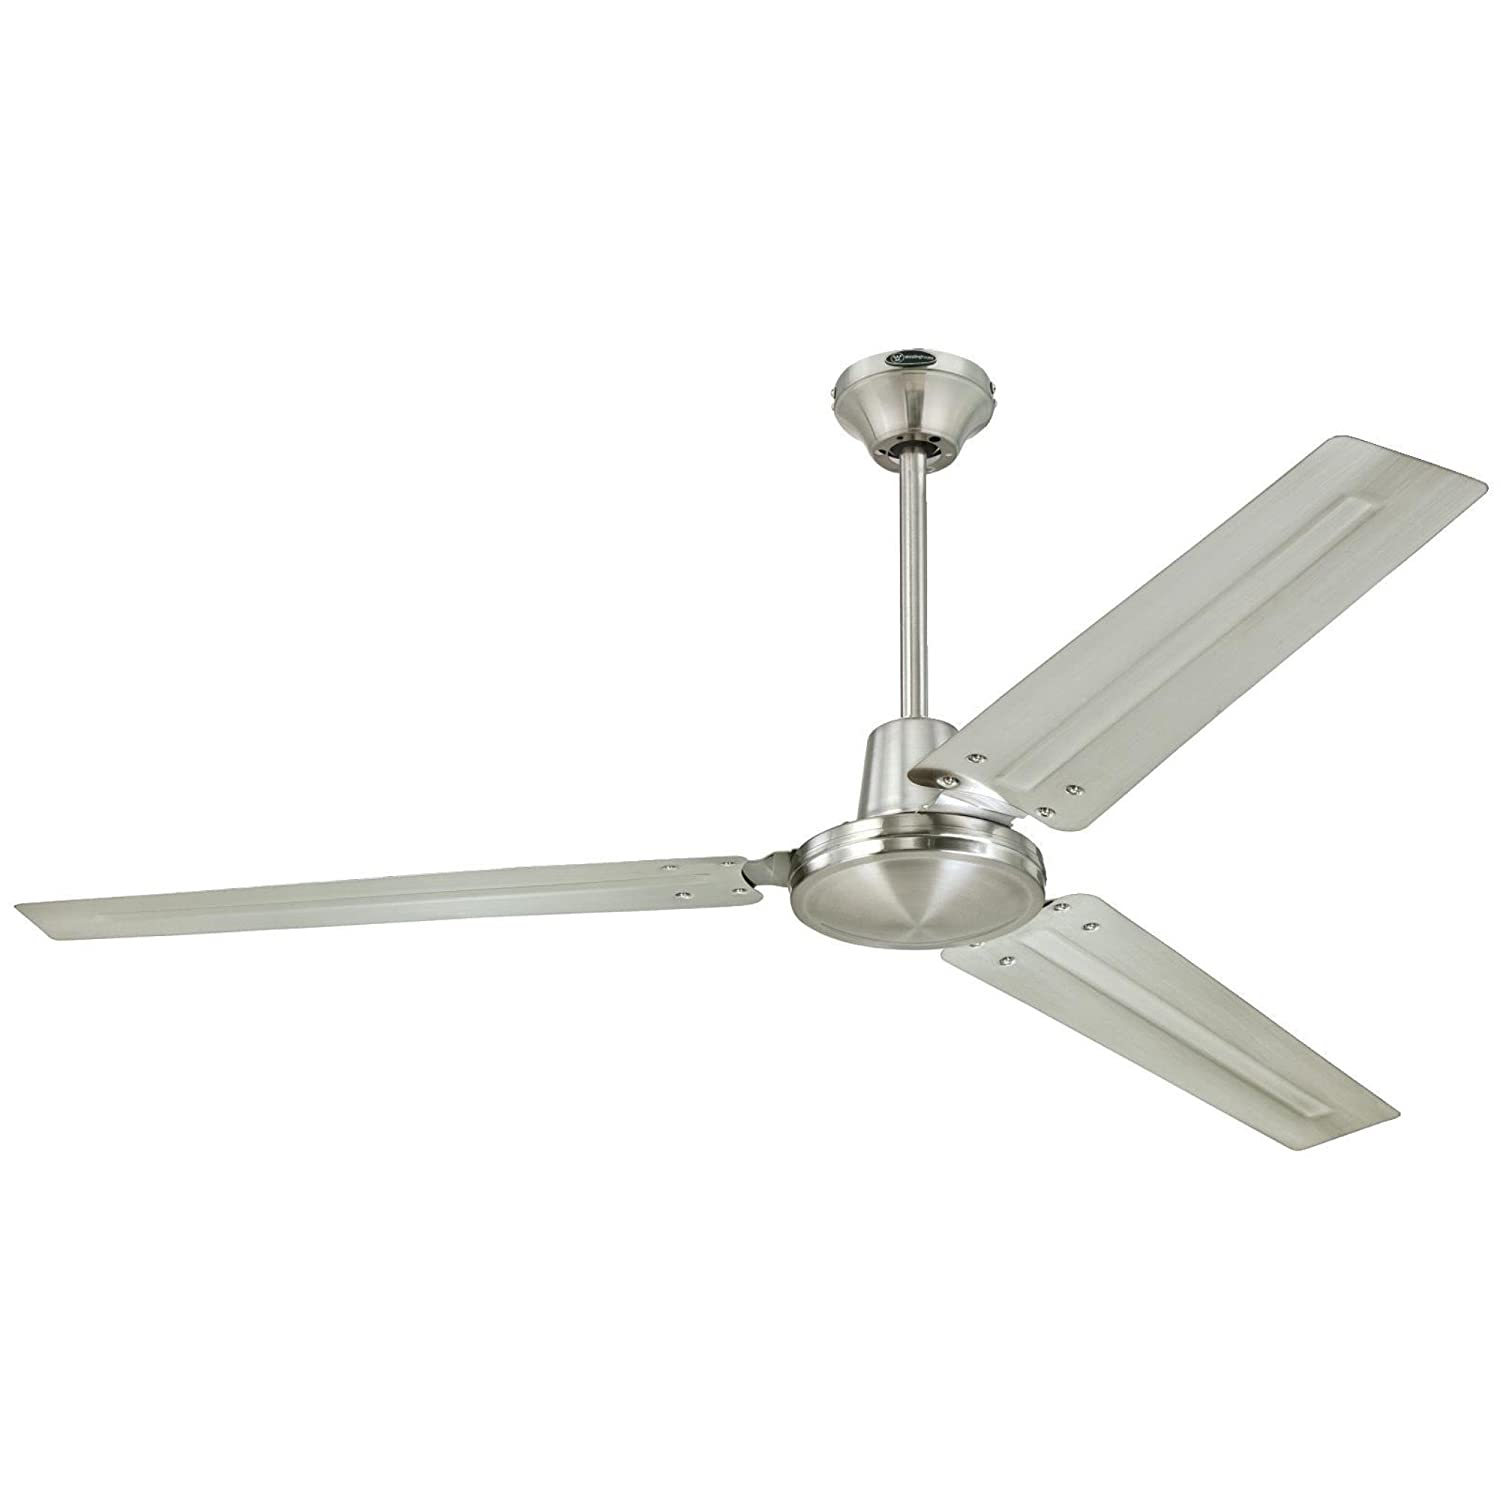 Westinghouse 7861400 Industrial 56-Inch Three-Blade Indoor Ceiling Fan, Brushed Nickel with Brushed Nickel Steel Blades